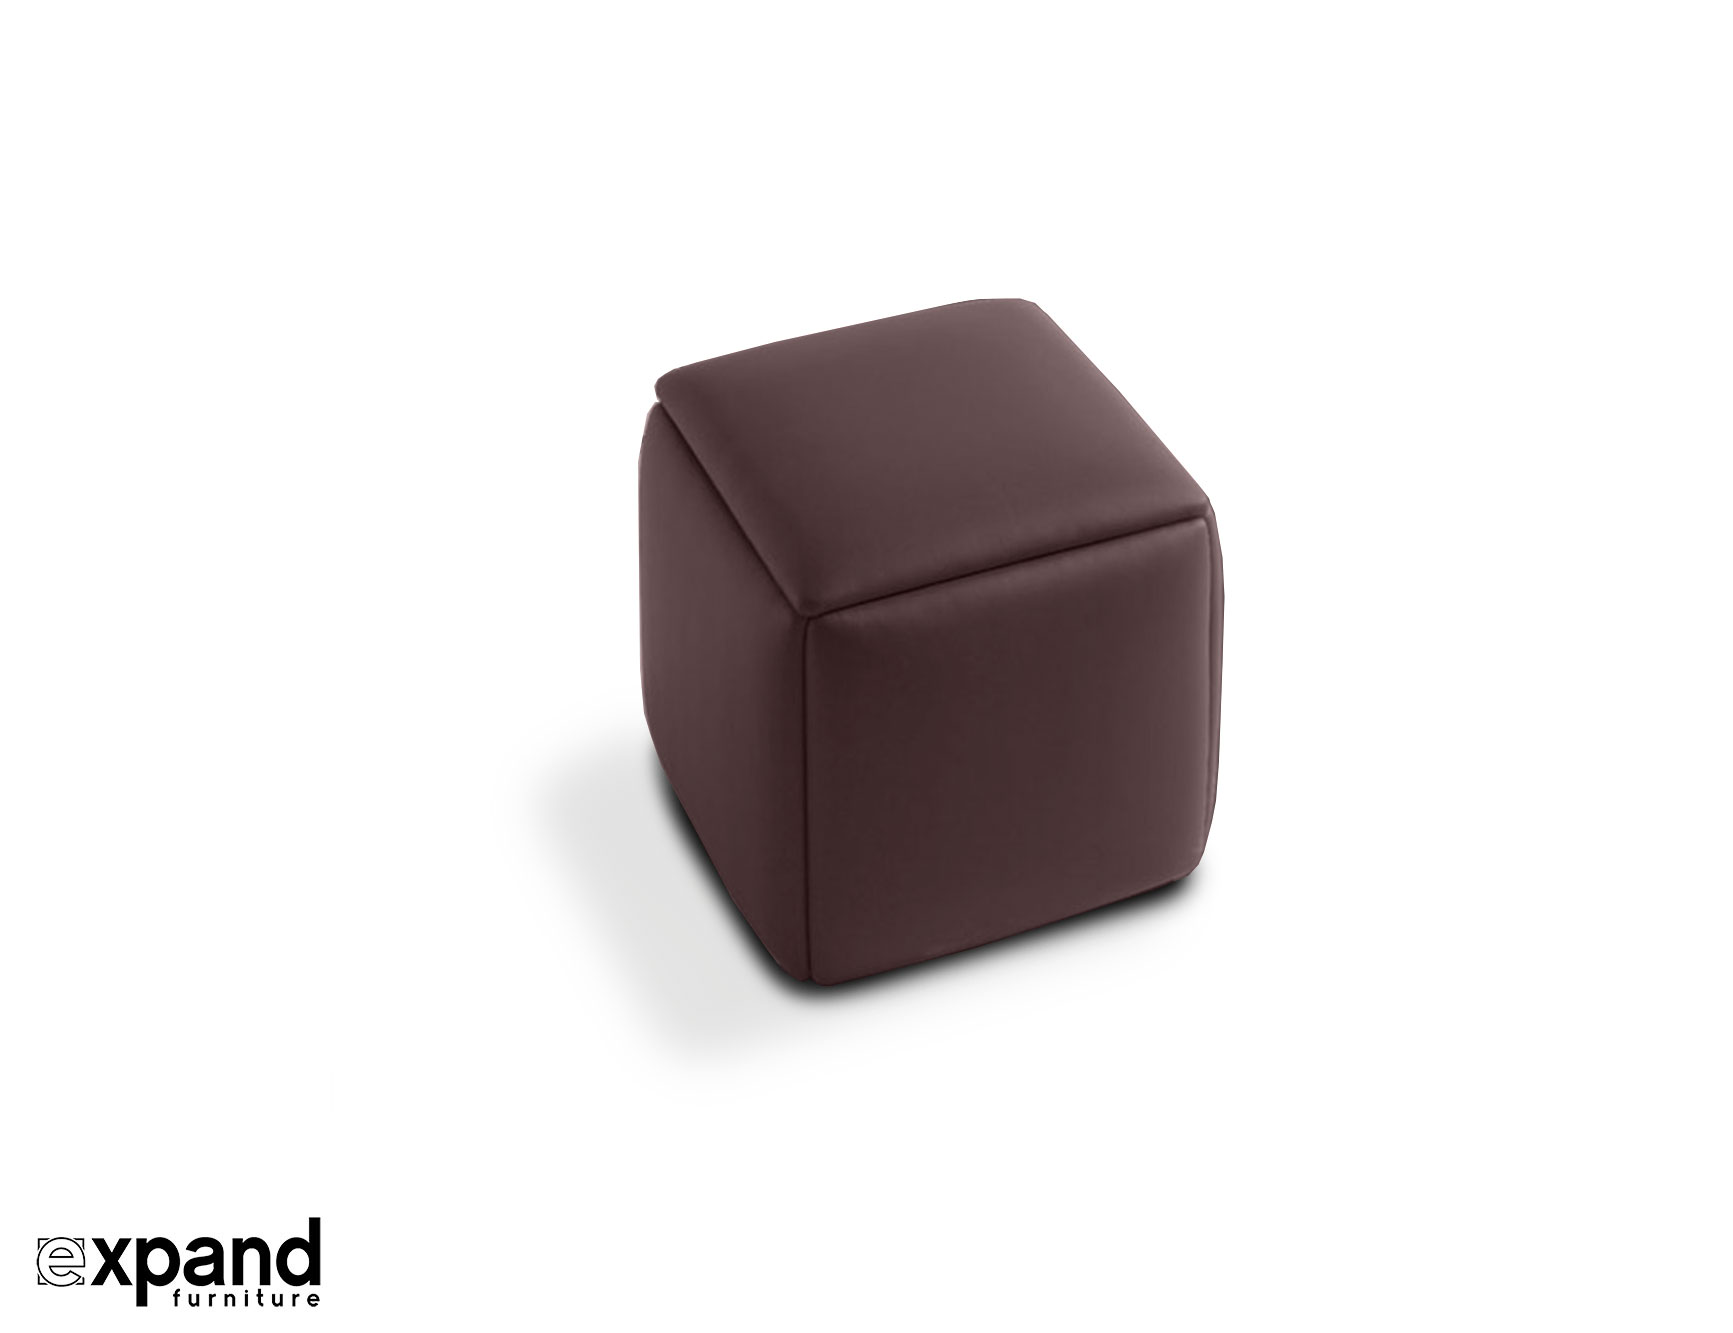 Cube Chairs Cube 5 In 1 Ottoman Seat Space Saver